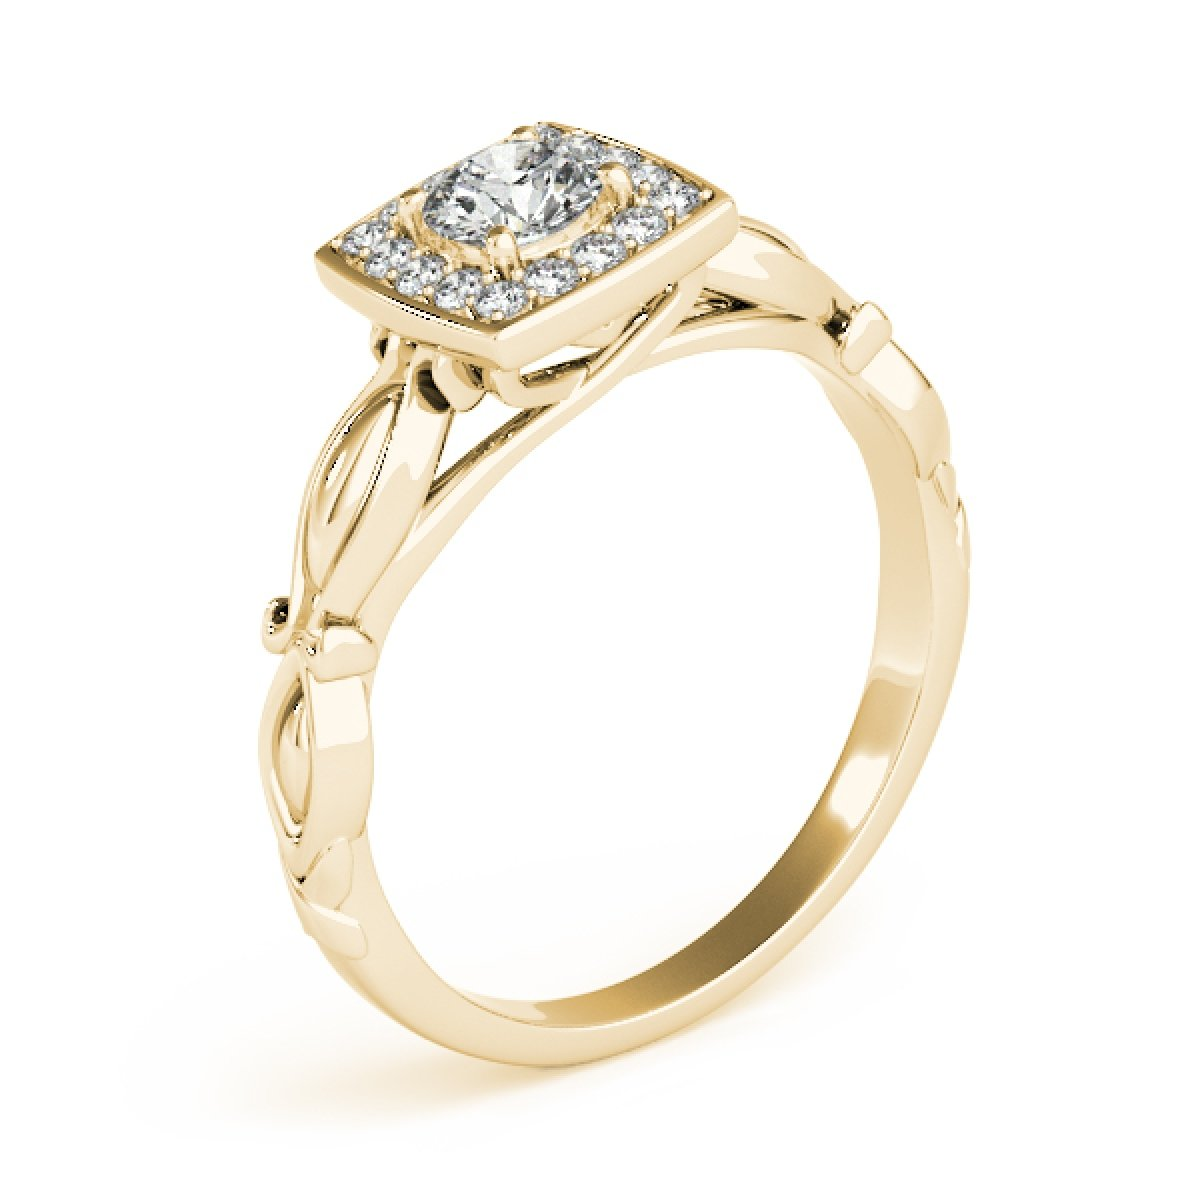 0.50 Ct Diamond Halo Square Cut Engagement Ring In 14K Yellow Gold by MauliJewels (Image #3)